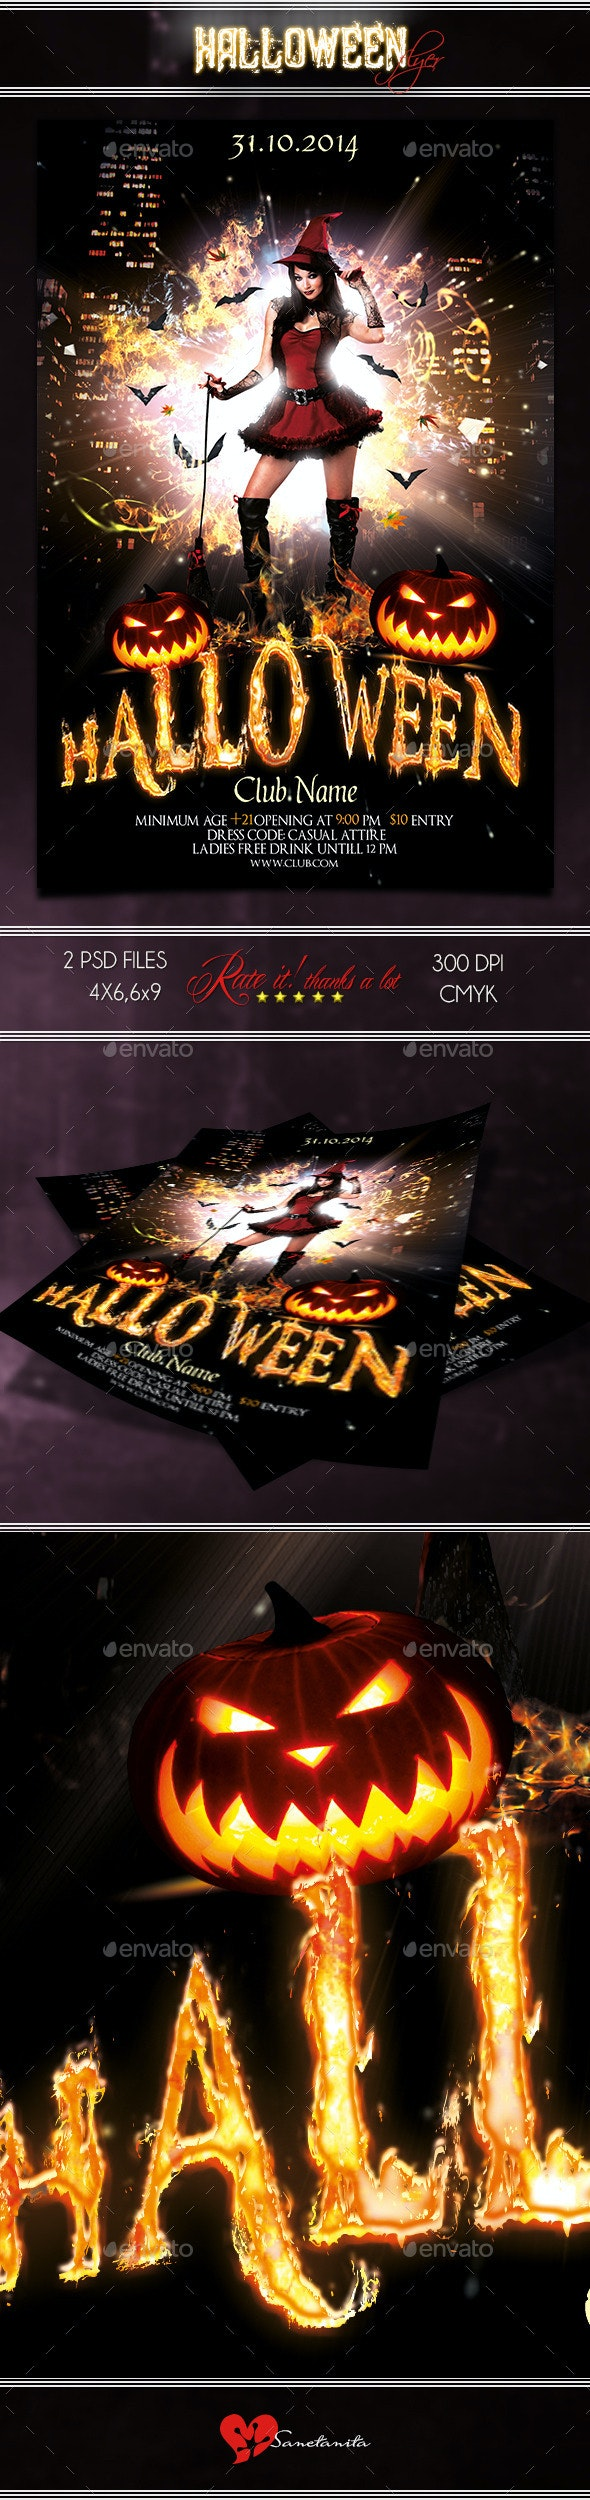 Halloween Flyer 3 - Holidays Events